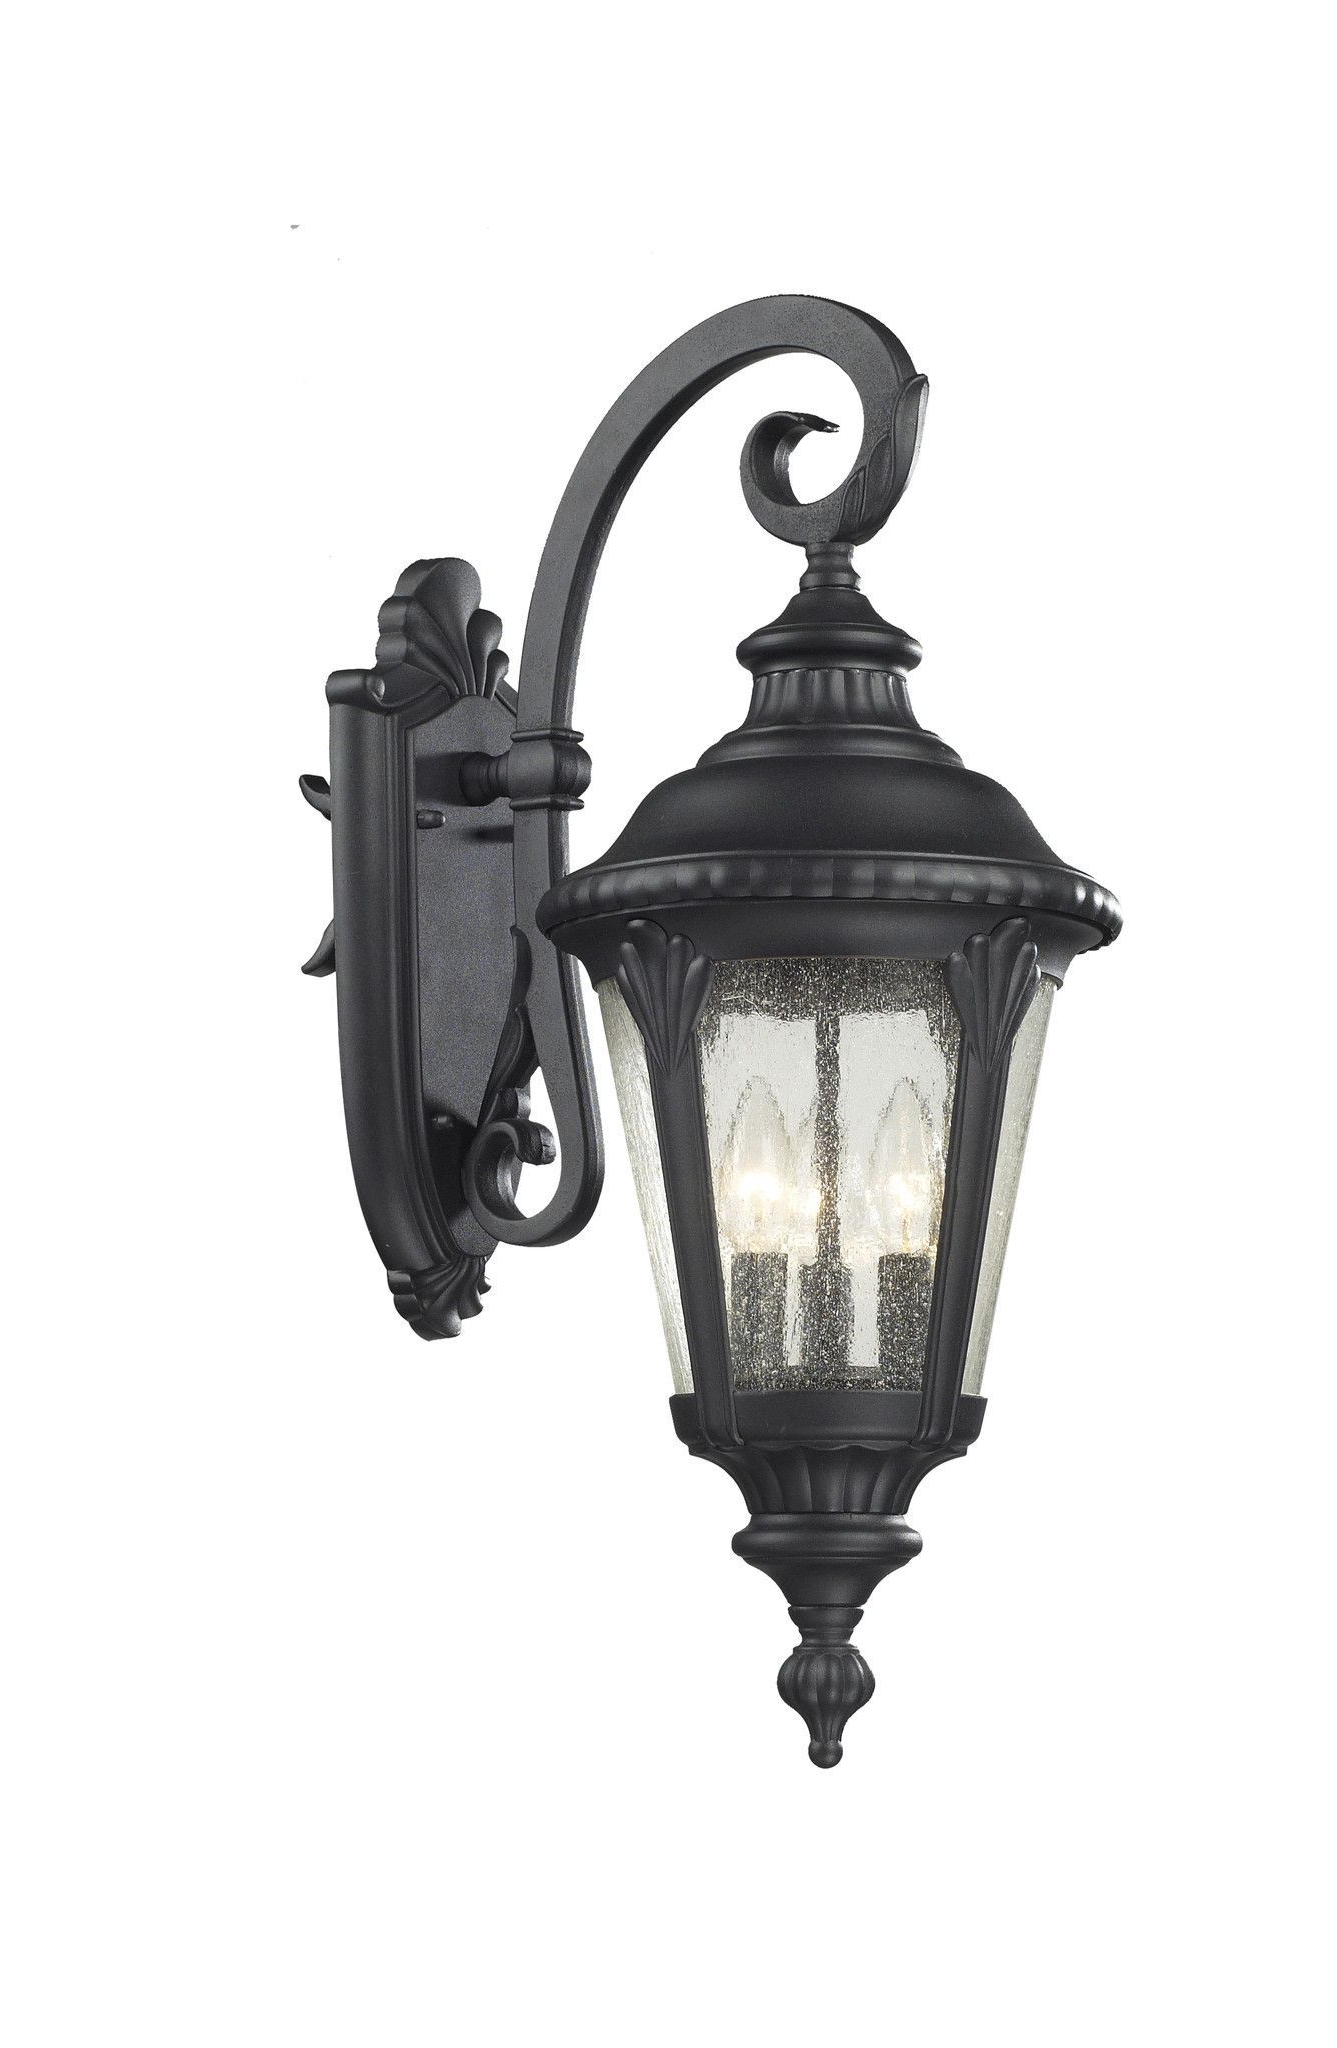 Clarisa Seeded Glass Outdoor Barn Lights With Dusk To Dawn Regarding Latest Traditional And Timeless, This Medium Outdoor Wall Mount (View 15 of 15)